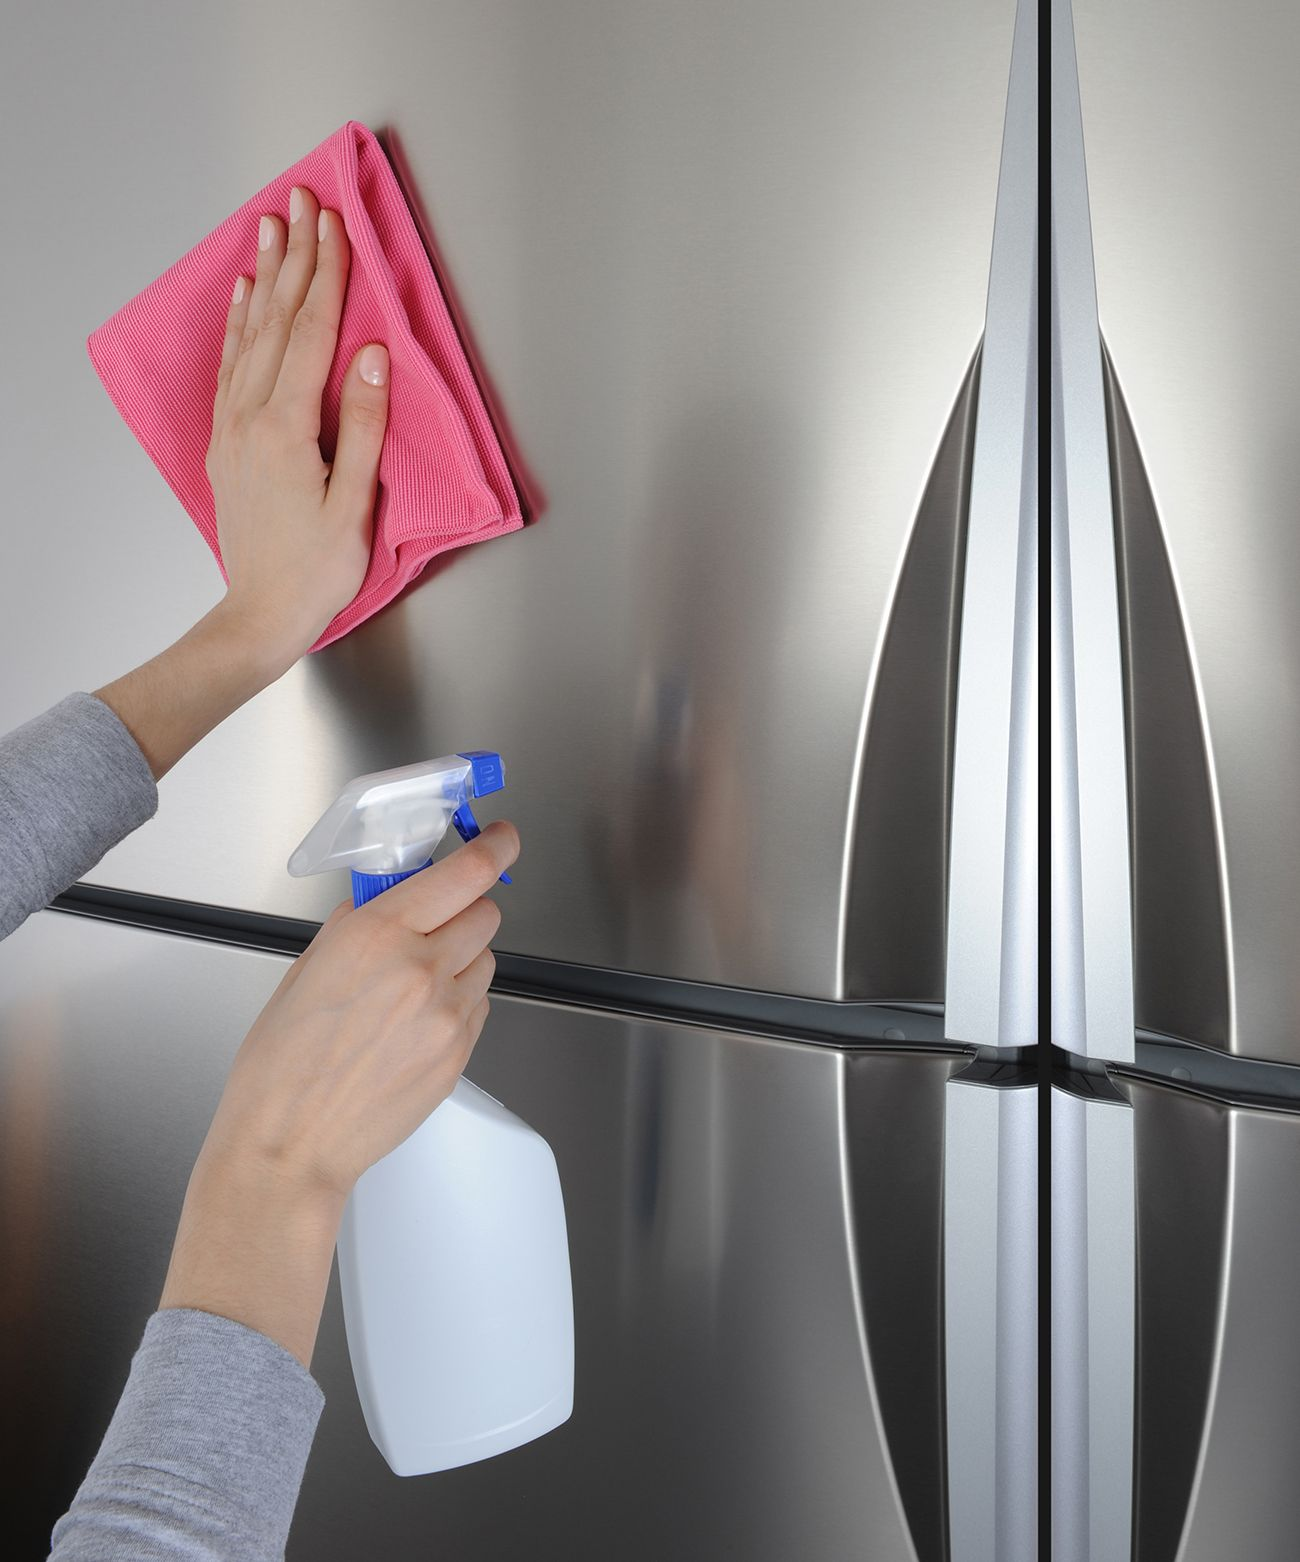 How To Clean Stainless Steel Even Those Dark Water Stains Stainless Steel Cleaning Cleaning Stainless Steel Appliances Stainless Steel Refrigerator